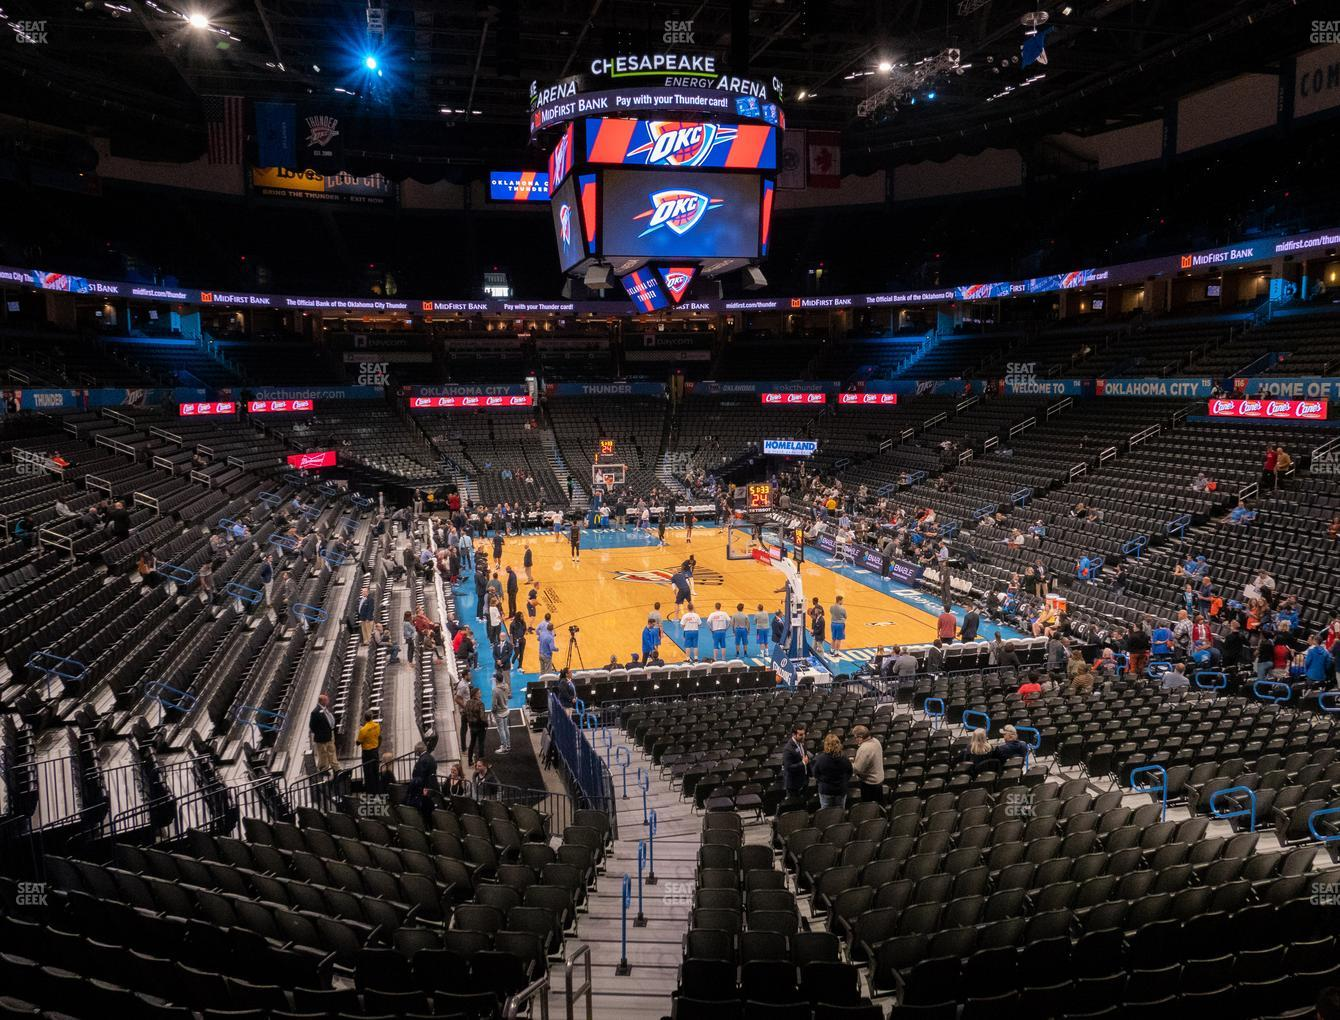 Oklahoma City Thunder at Chesapeake Energy Arena Lower Terrace 202 View